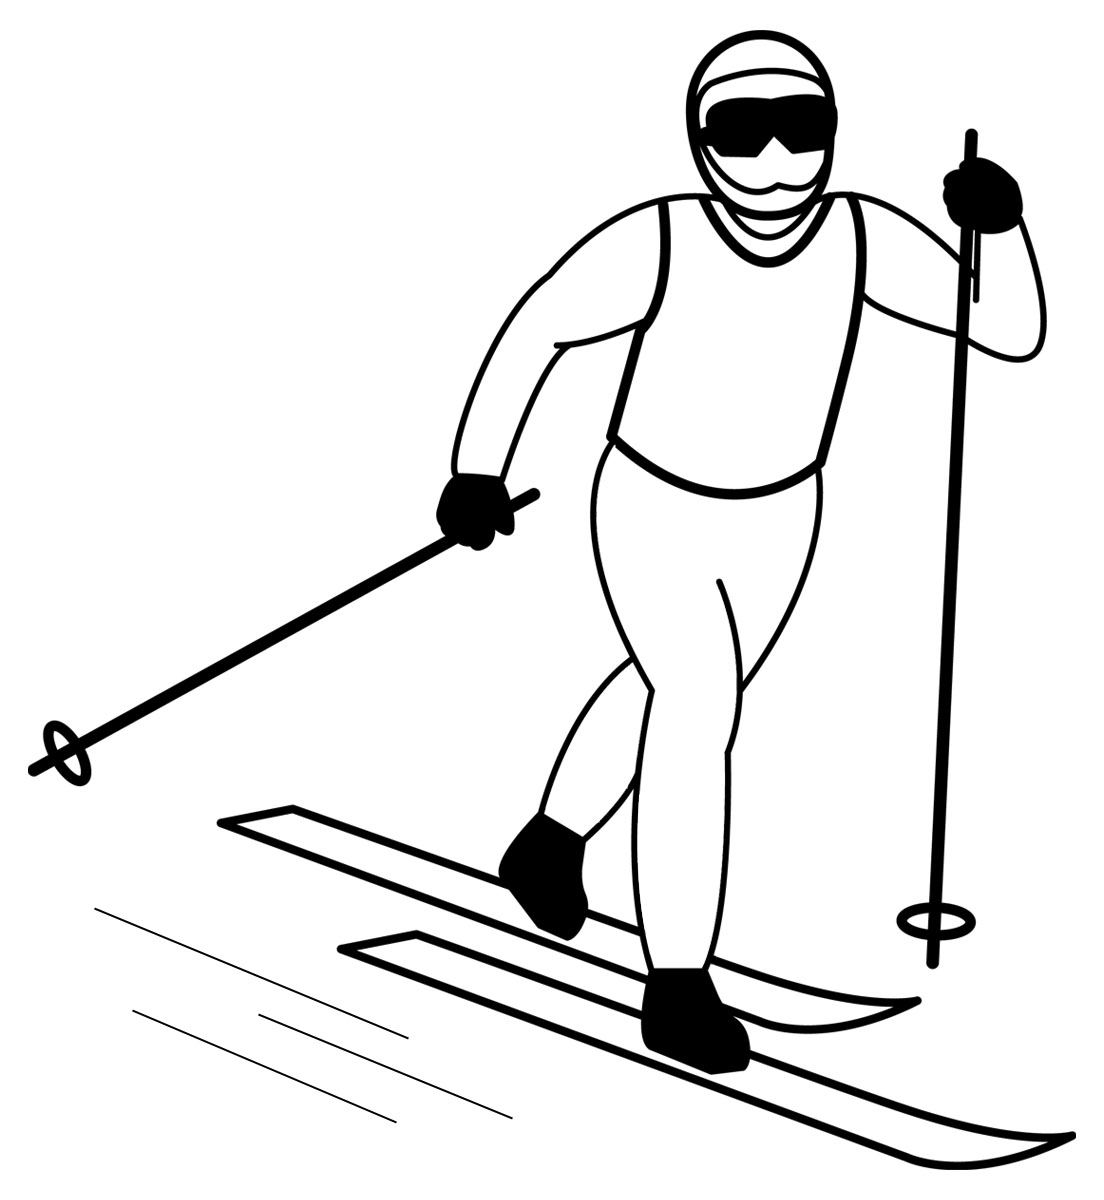 cross country skiing coloring pages - photo#22